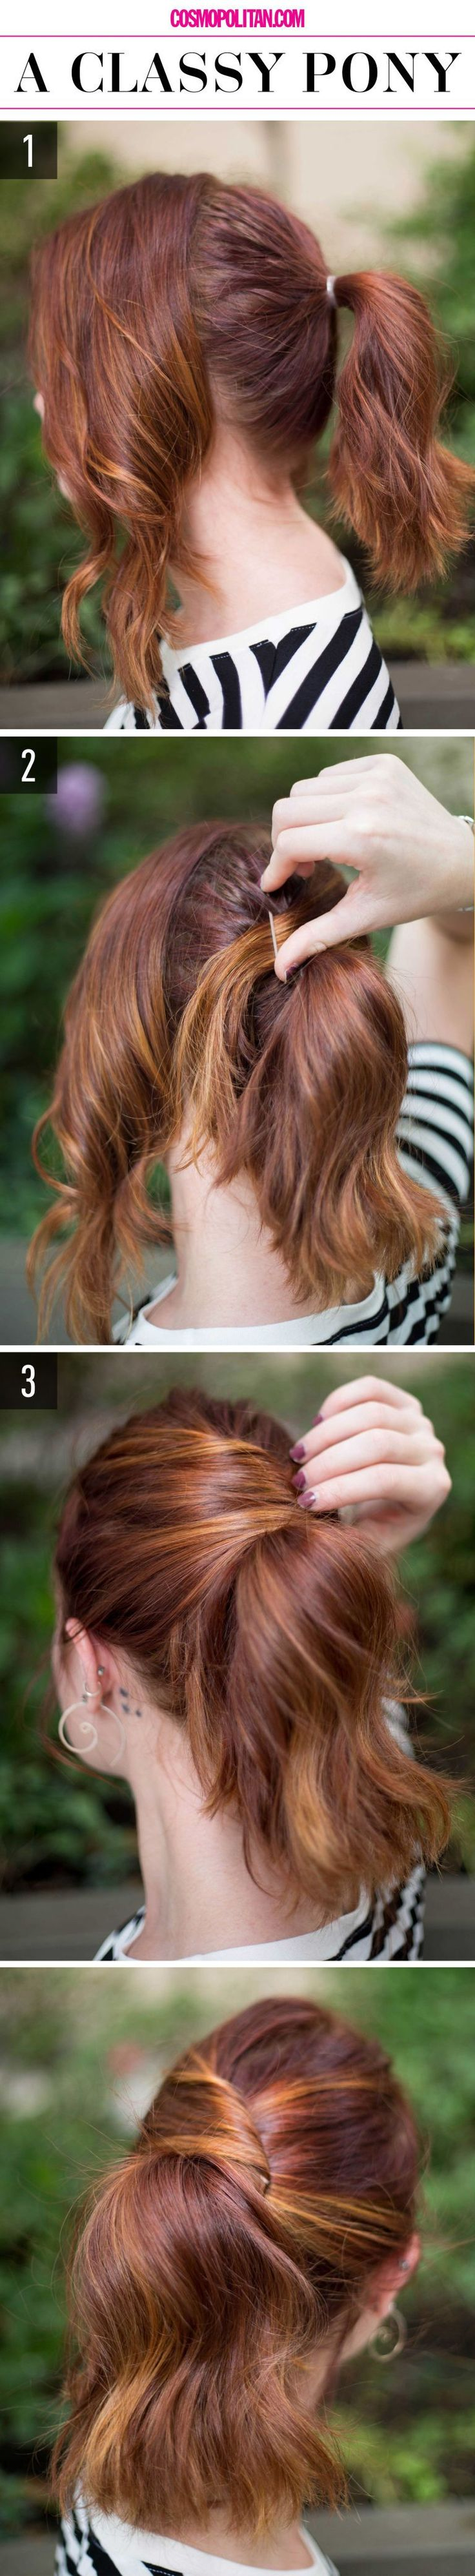 best 25+ two ponytail hairstyles ideas on pinterest | two